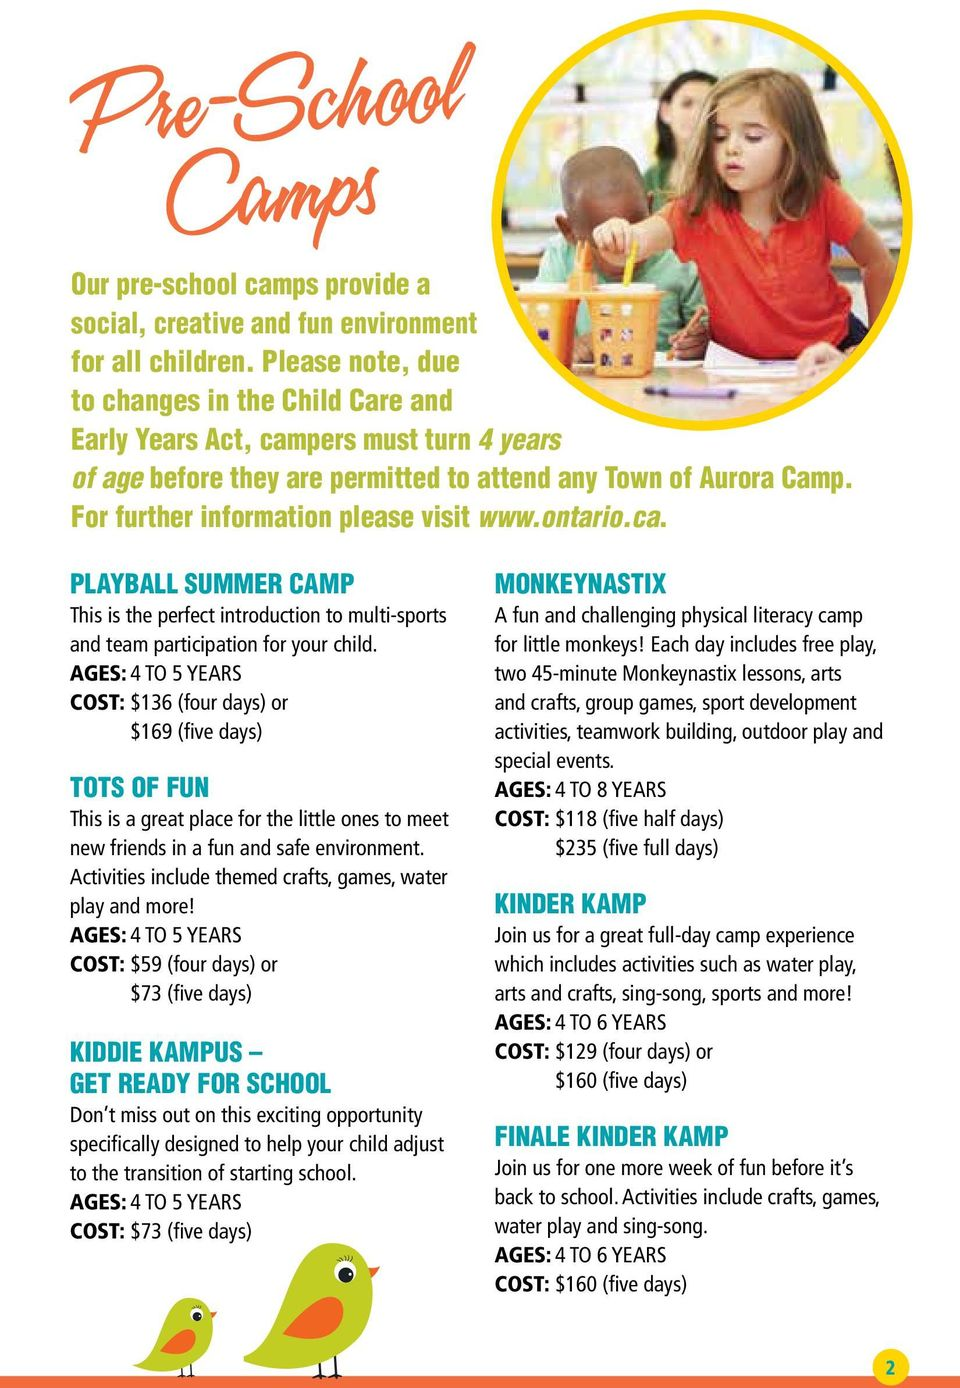 For further information please visit www.ontario.ca. PLAYBALL SUMMER CAMP This is the perfect introduction to multi-sports and team participation for your child.